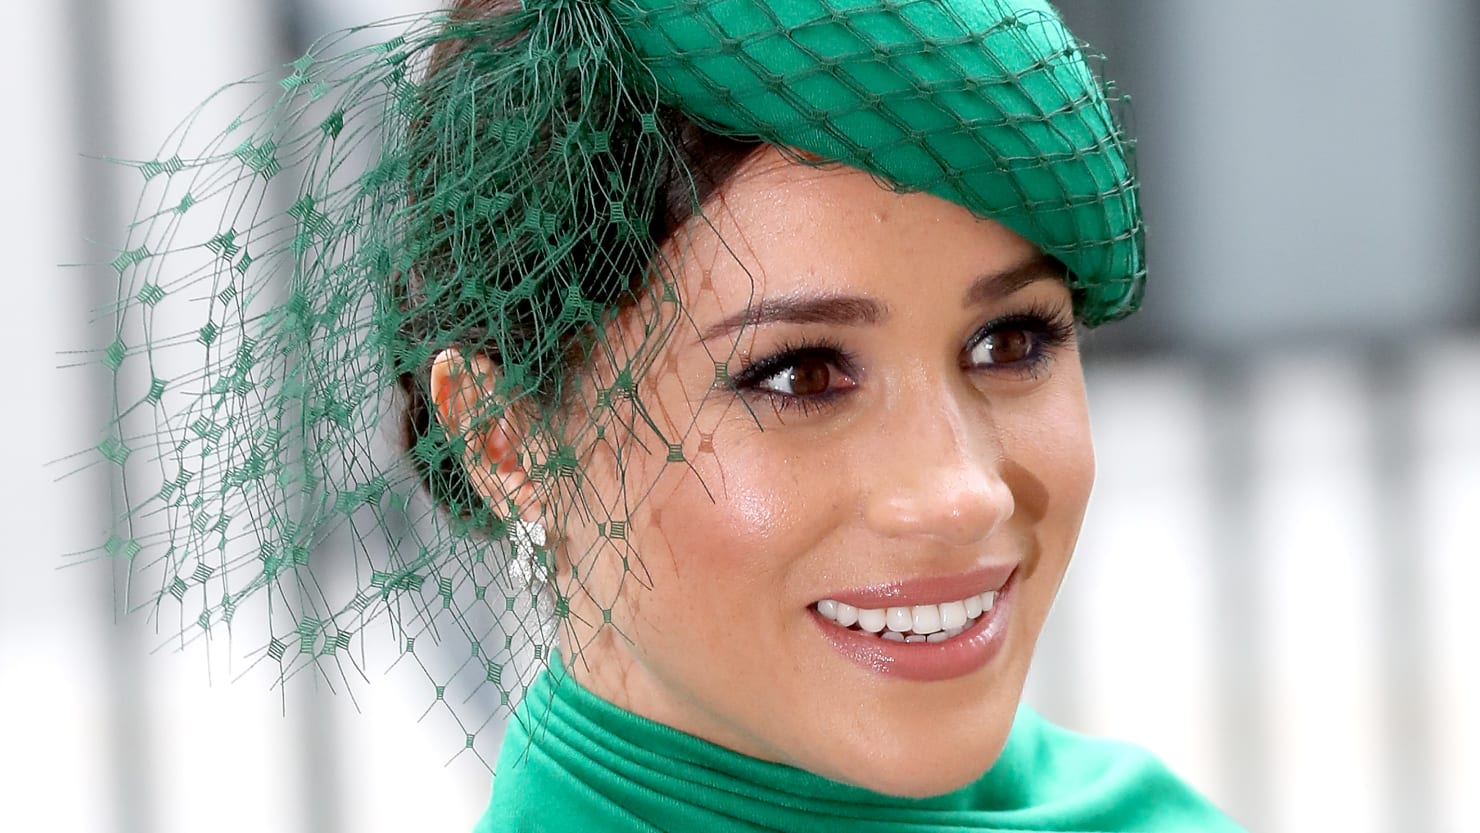 Meghan and Harry Make Legal Threat Over Palace Briefing to the BBC on the Naming of Lilibet